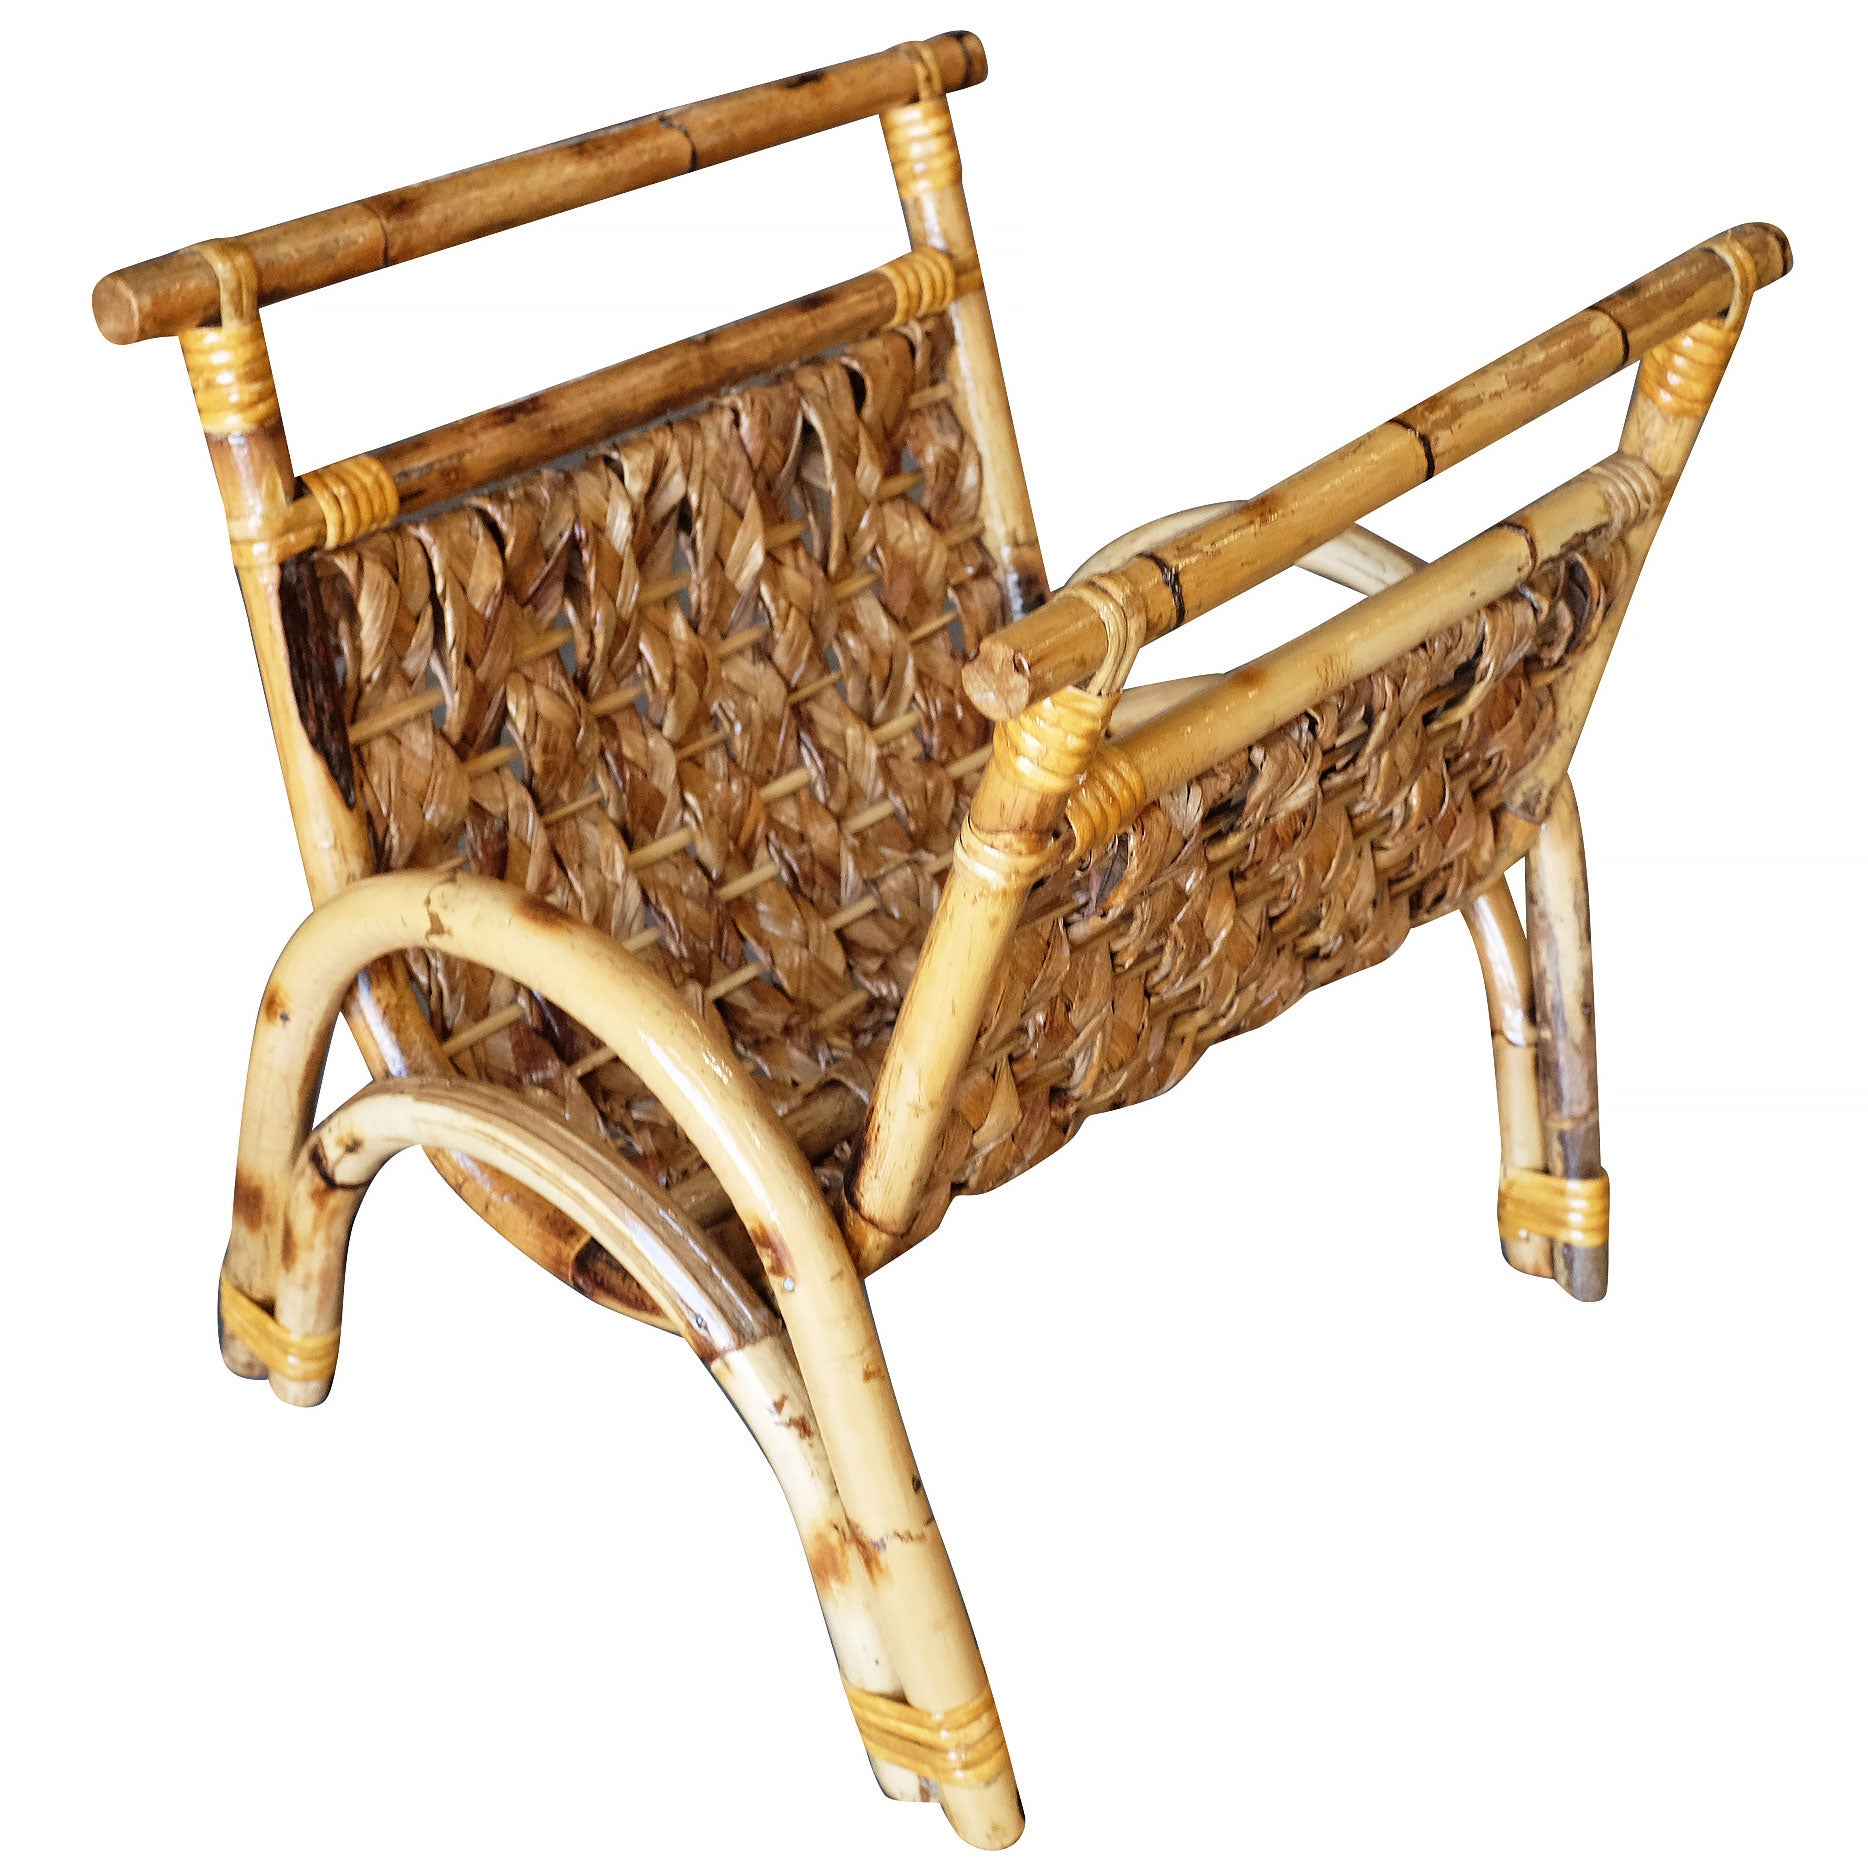 Restored Woven Wicker and Rattan Magazine Rack